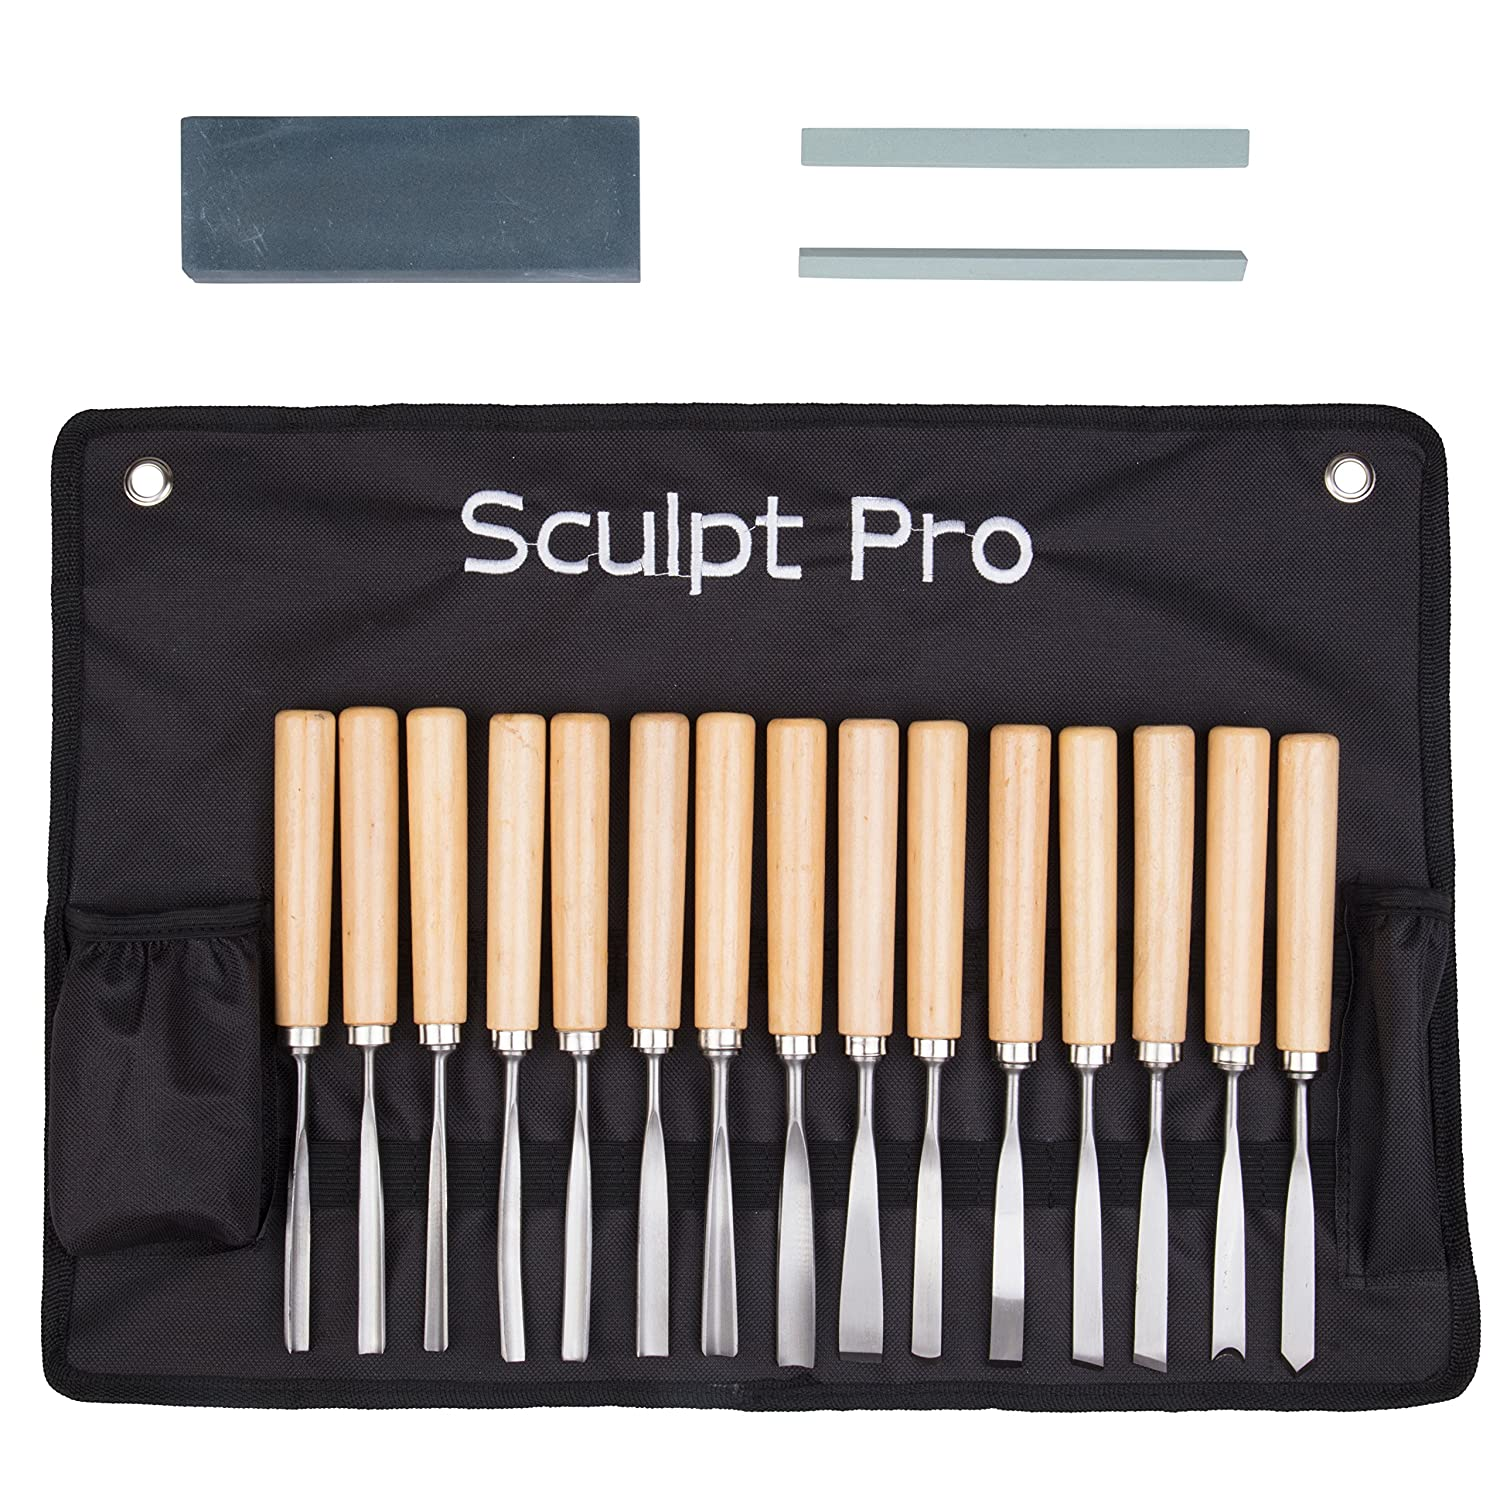 The Sculpt Pro Professional Wood Carving Chisel Set